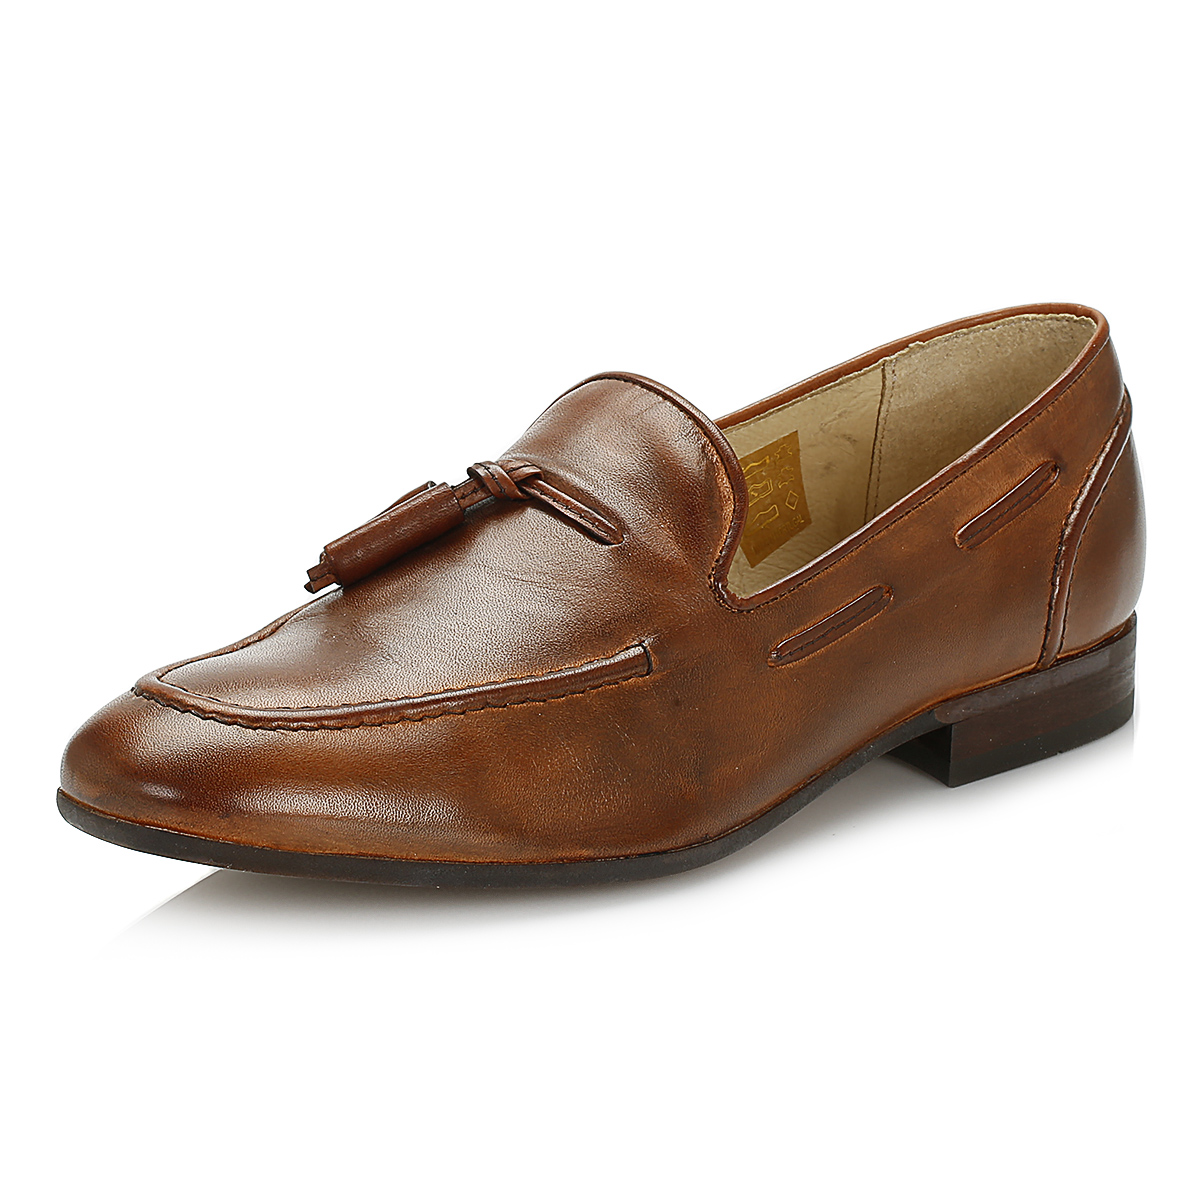 Hudson Mens Tassel Loafers, Tan Brown Leather, Casual ...